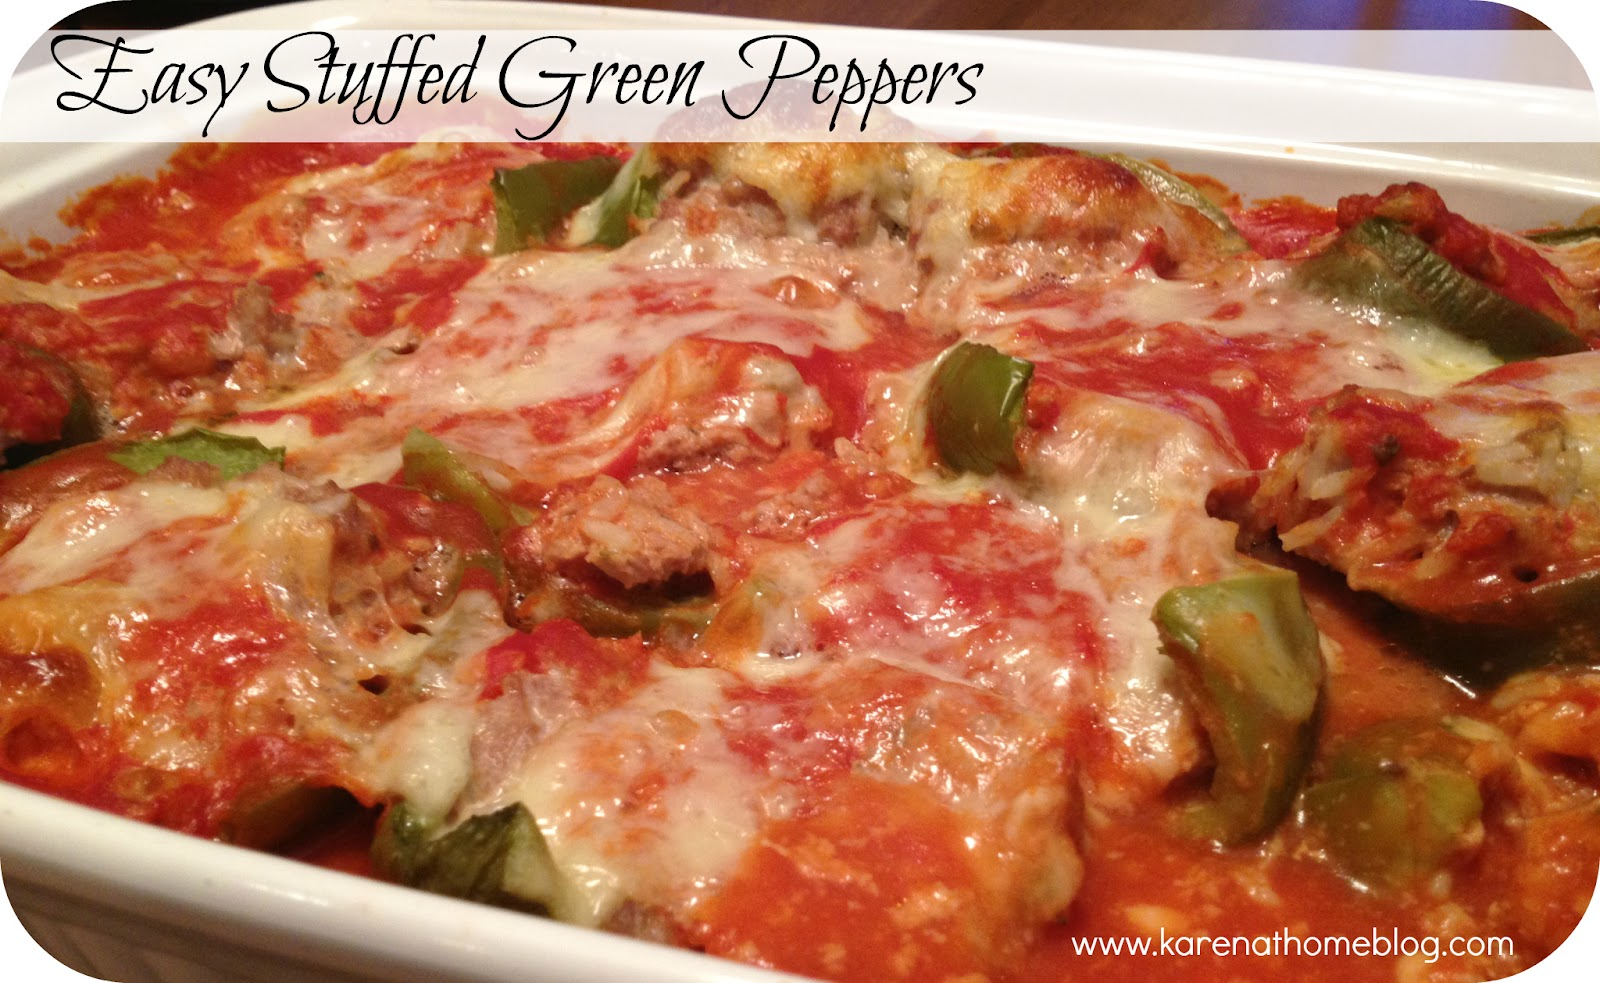 Karen At Home: Easy Stuffed Green Peppers